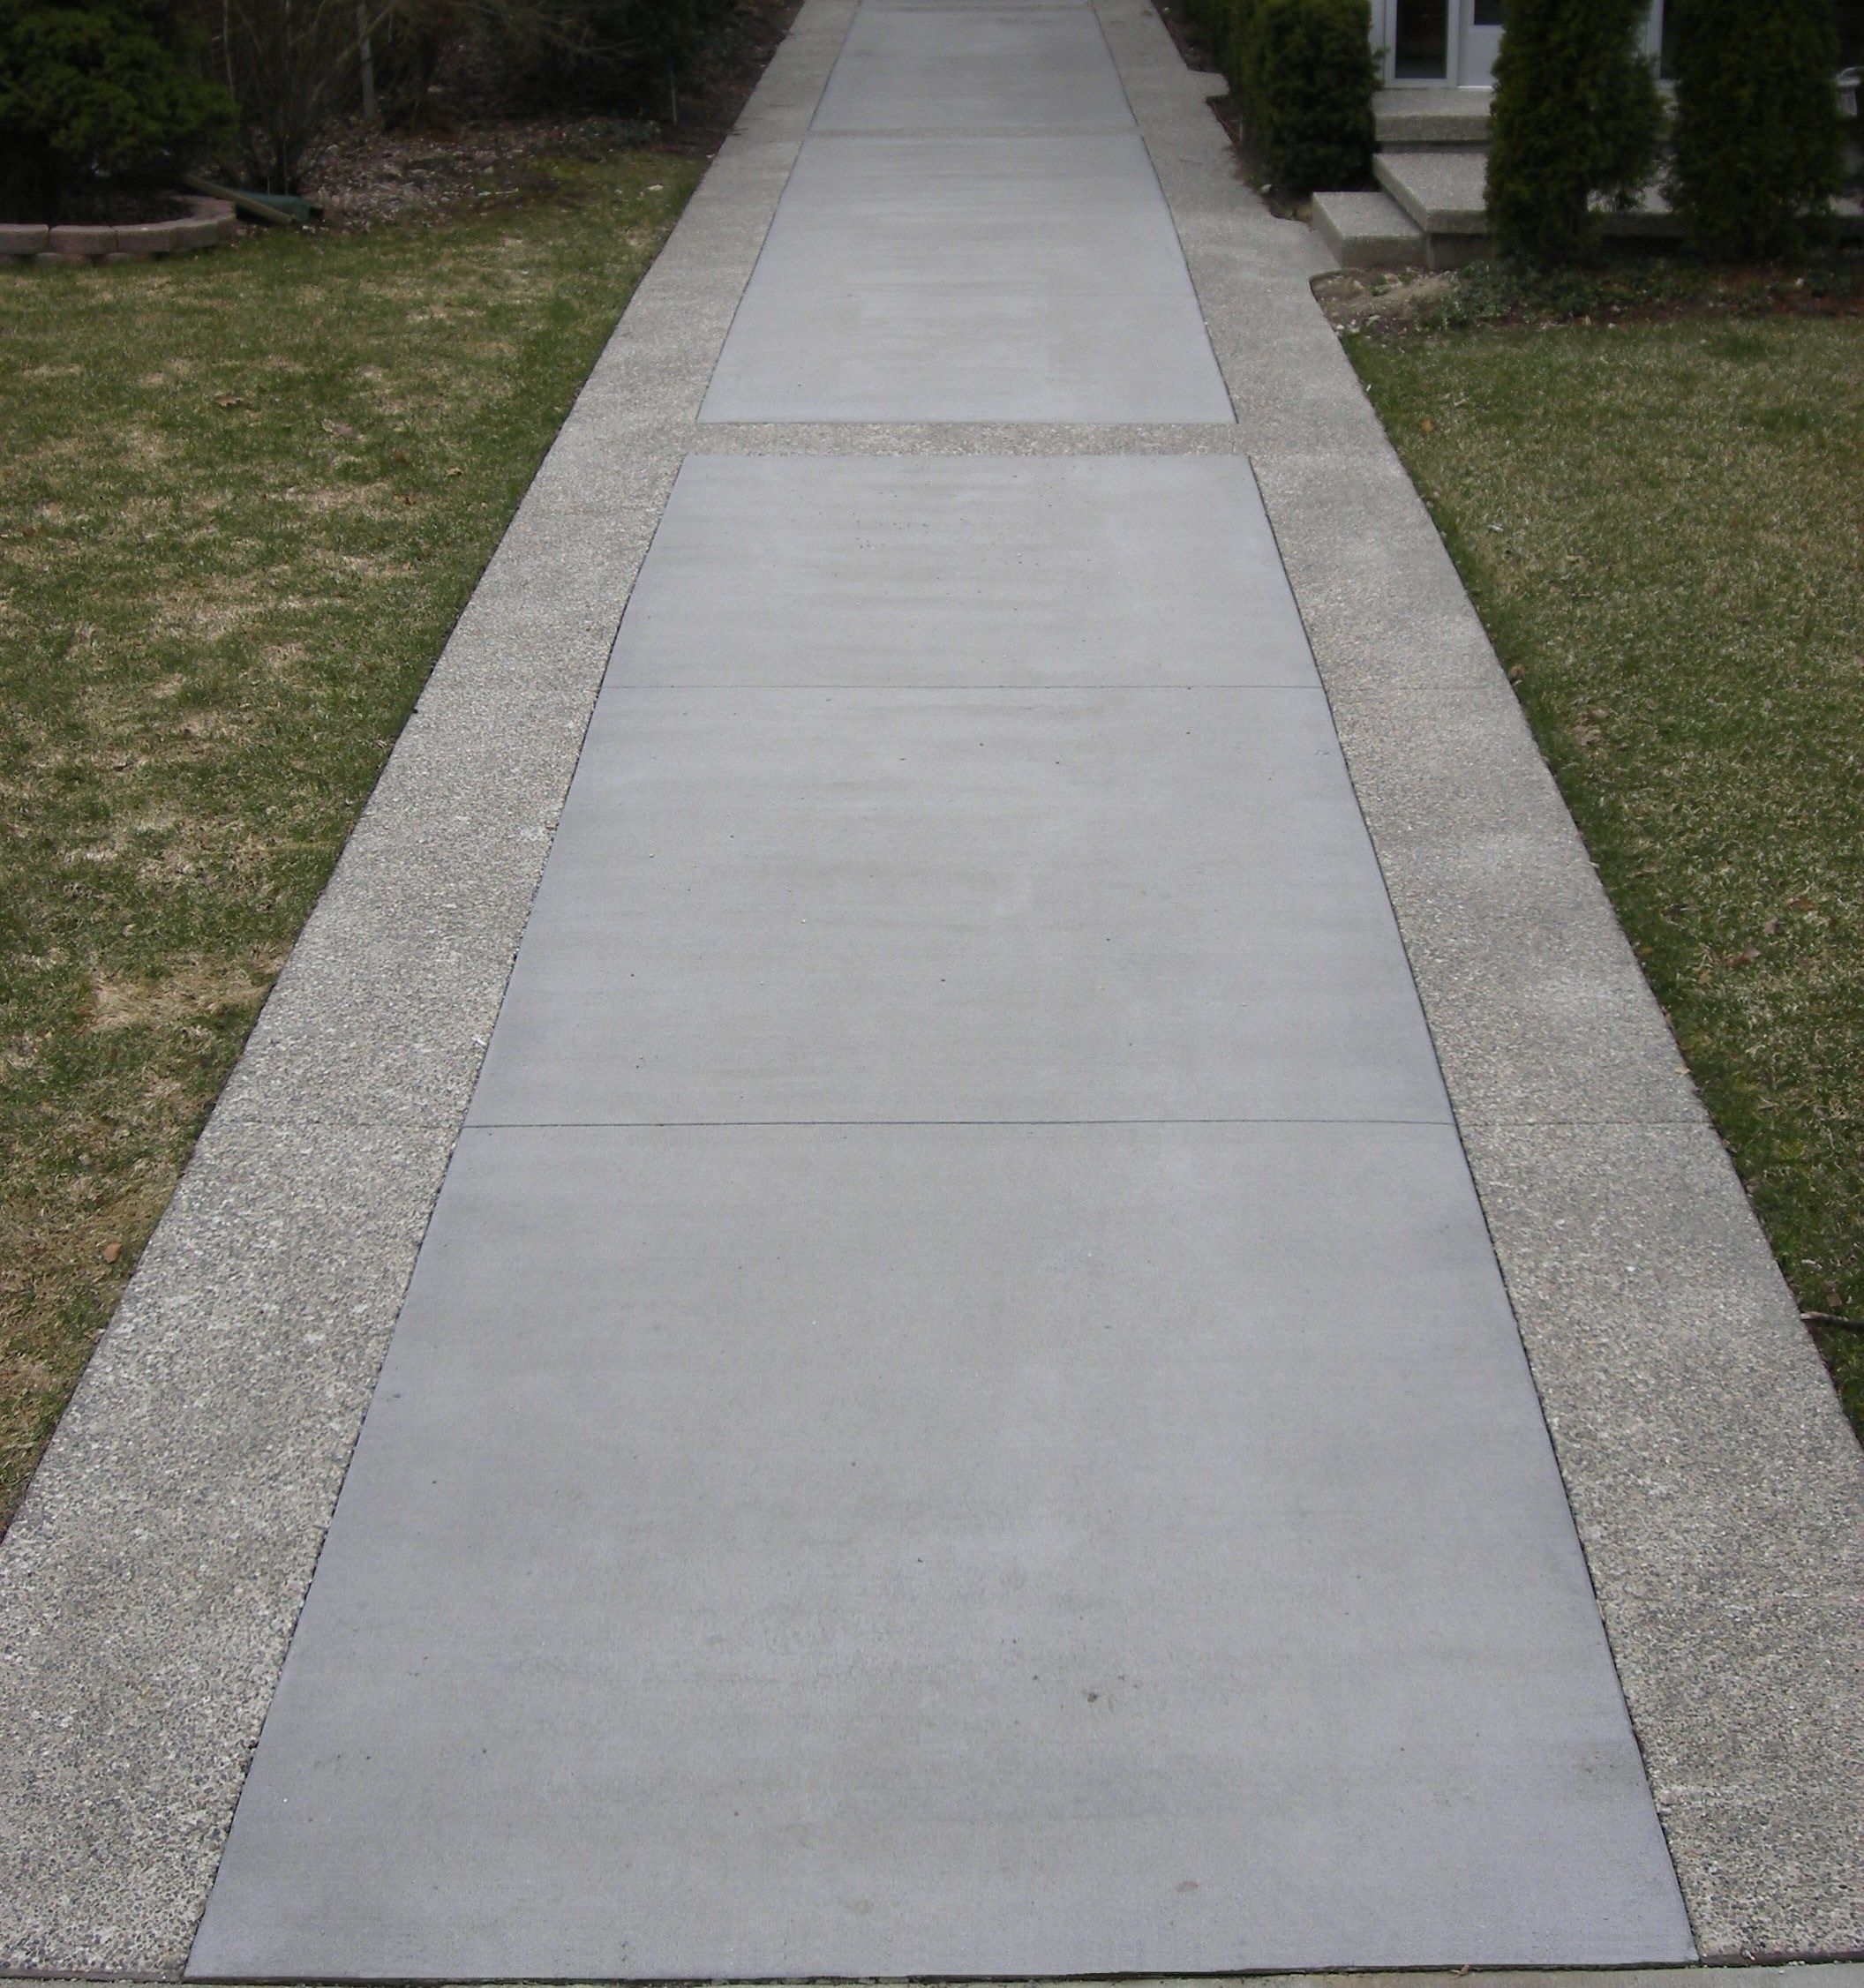 Concrete Outdoor Kitchen Countertops: Standard Broomed Driveway With Exposed Aggregate Border